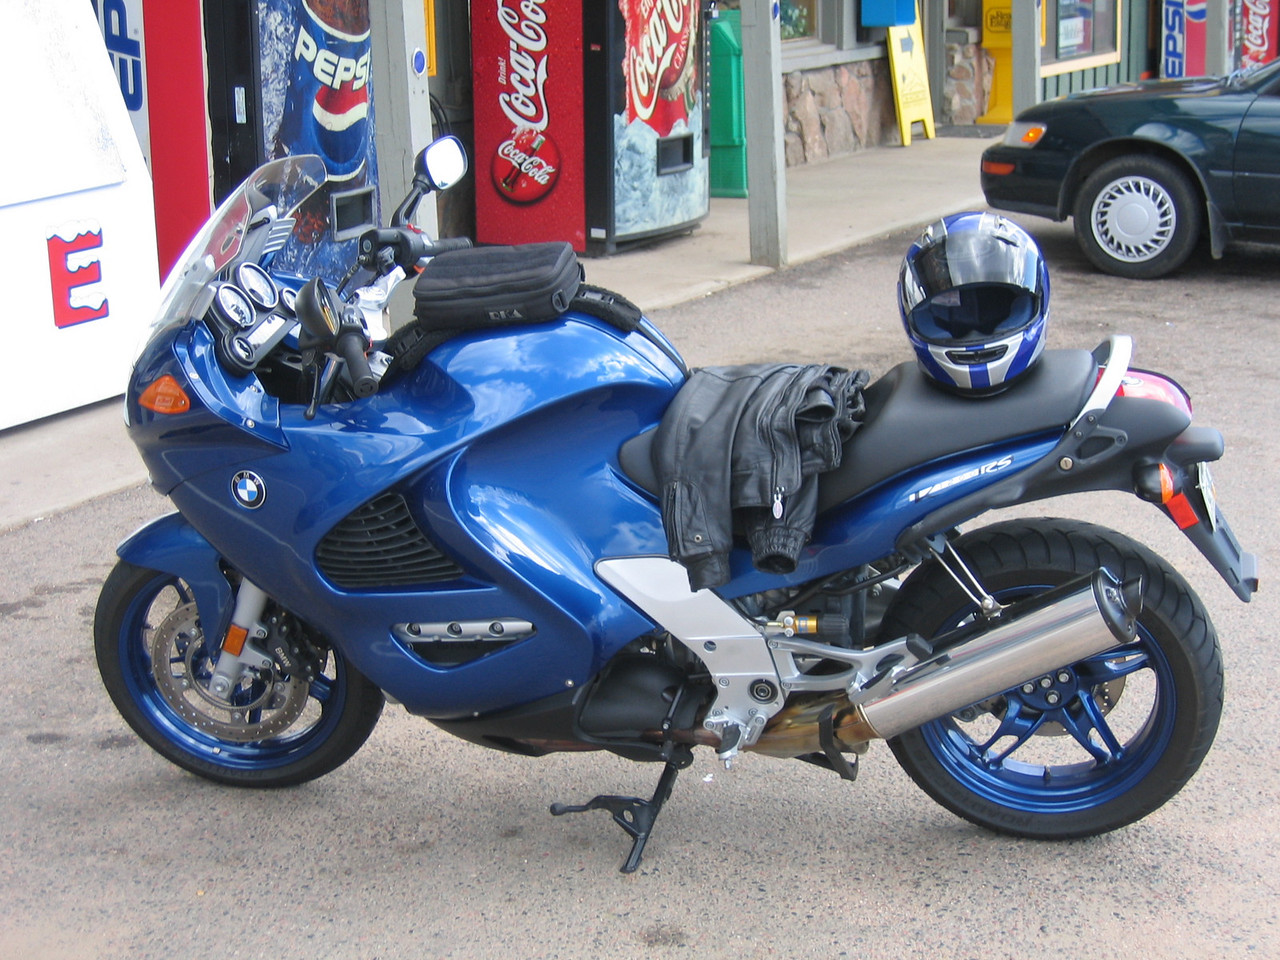 I arrived very early, so I fueled up (more on this later), then ate a Harvest bar and diet coke for brunch.  Mm, mm, that's tasty!  Soon, Mark Bohn (MBohn) shows up on his very blue K1200RS.  The custom paint on his wheels really makes the bike stand-out.